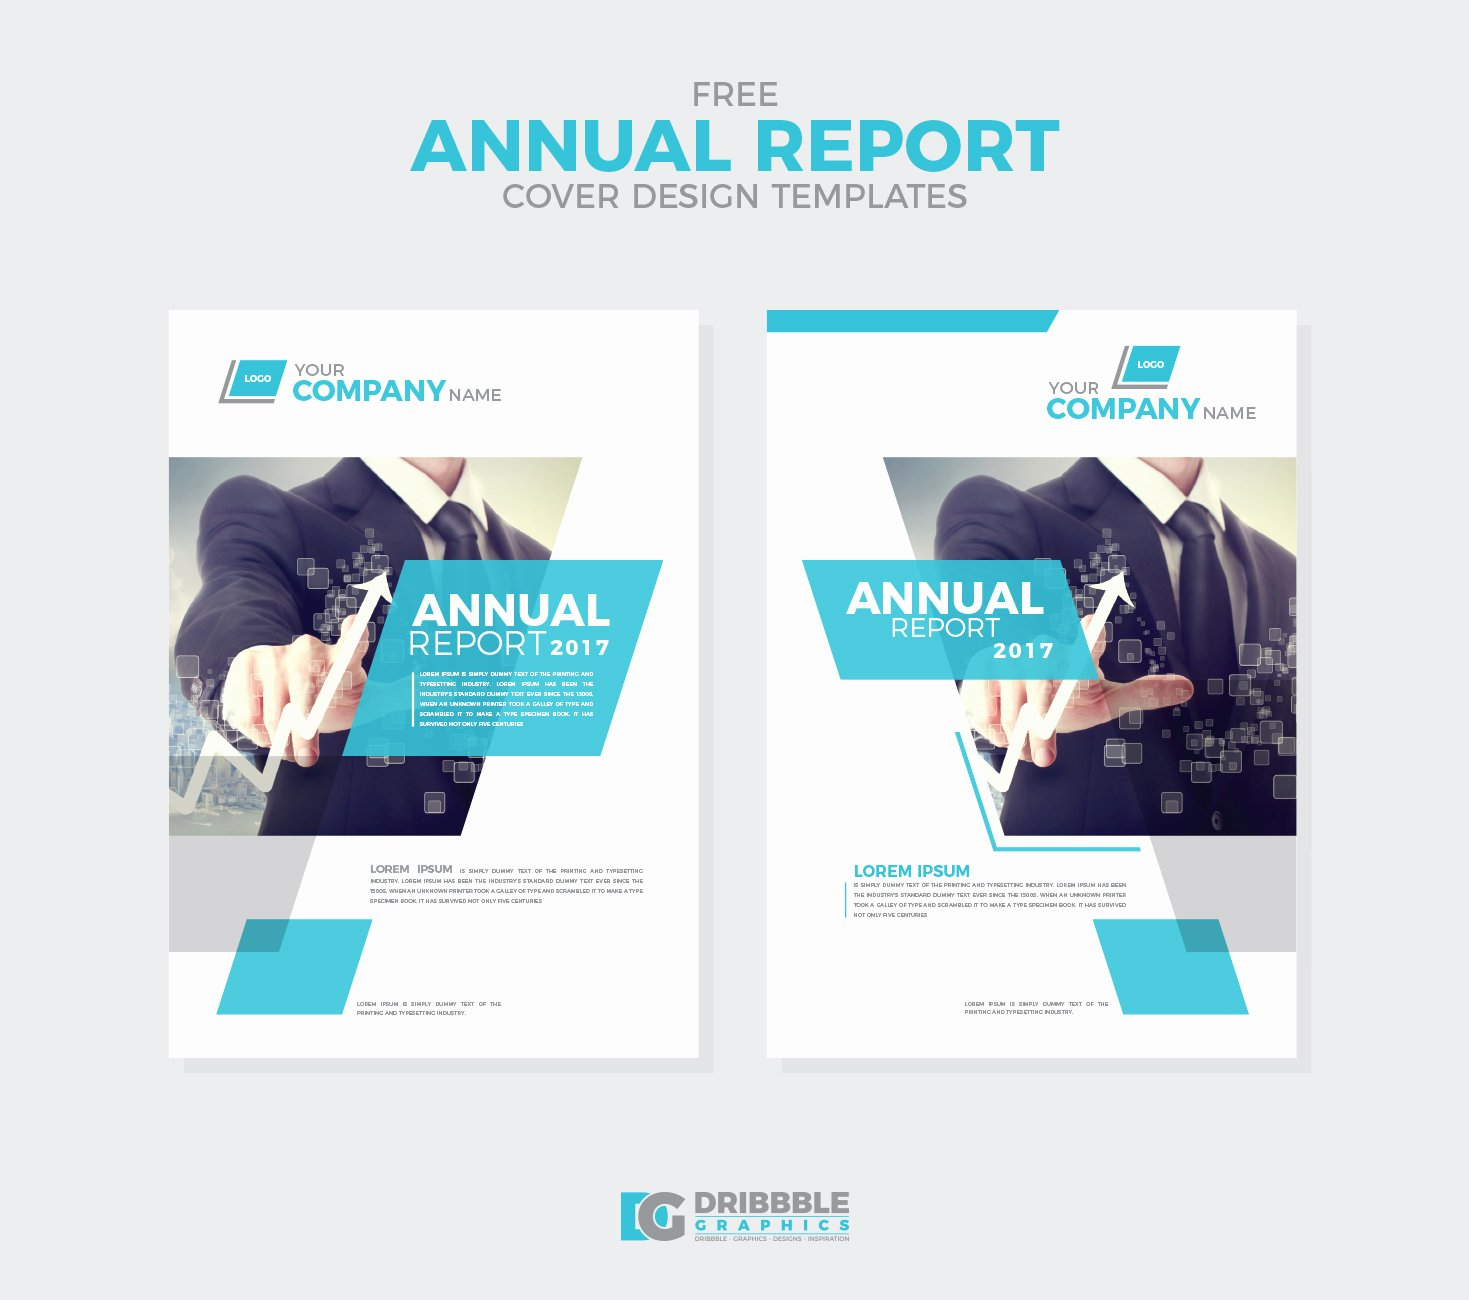 Free Annual Report Cover Design Templates